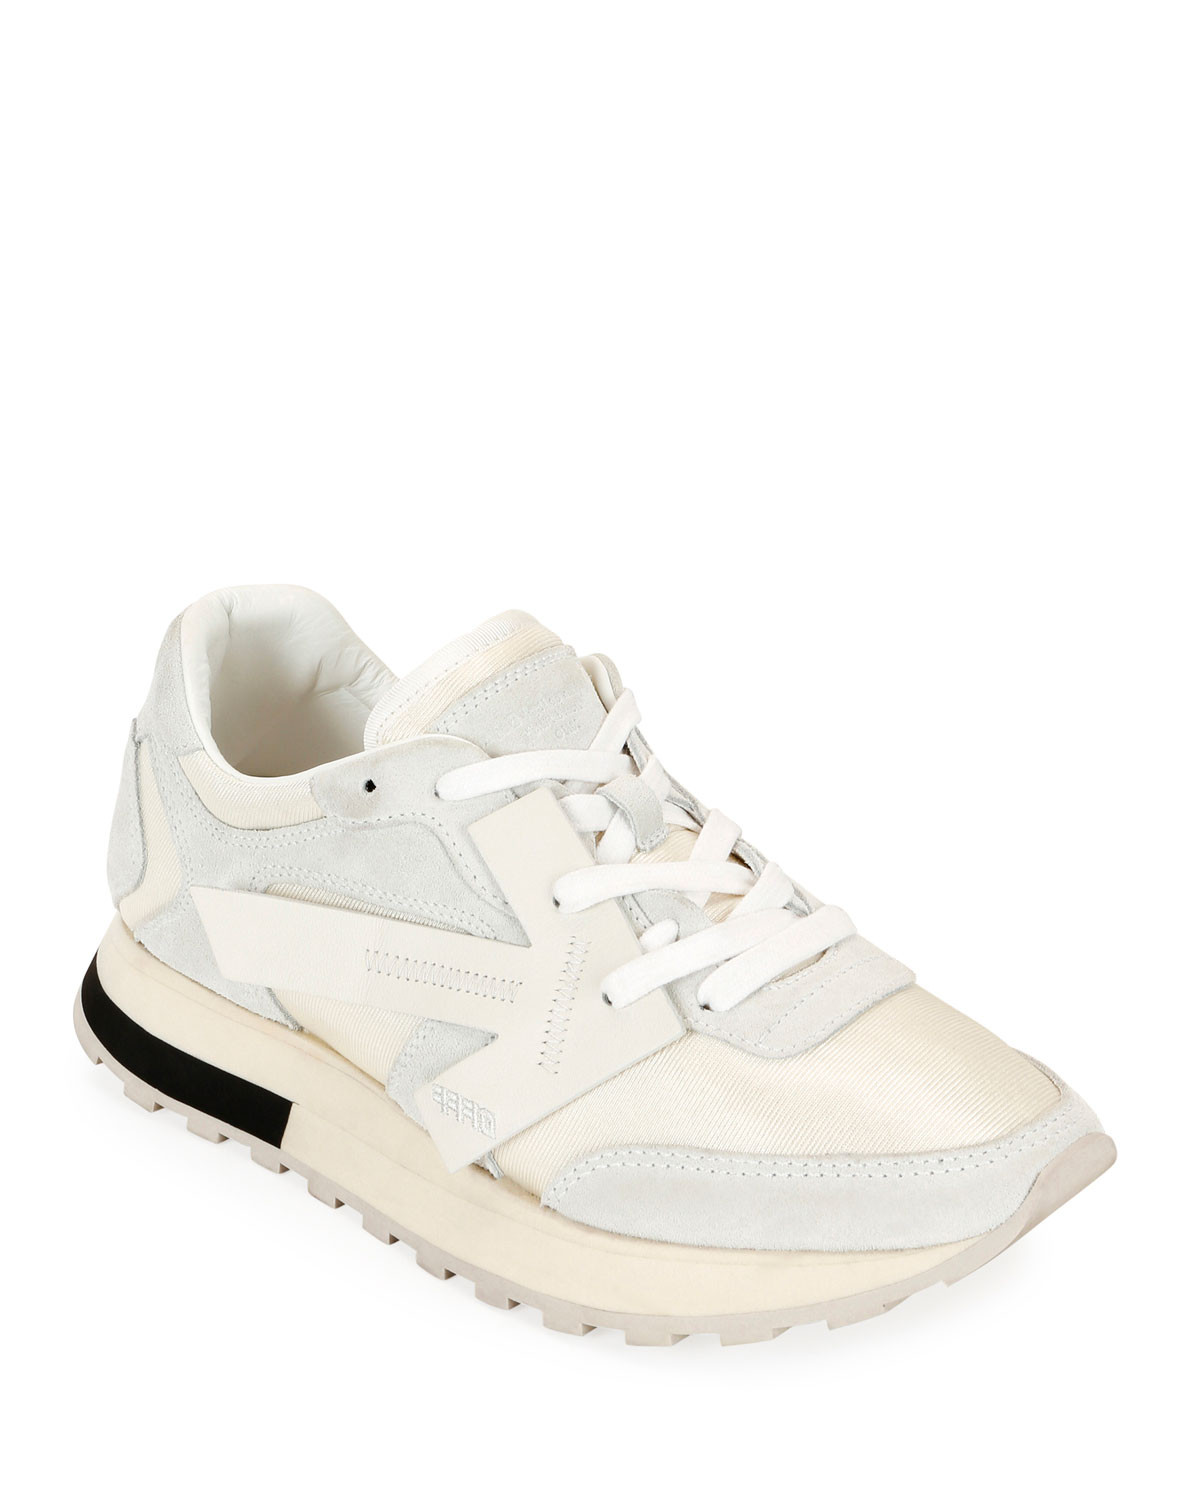 White Runner Hg Runner Low Top Suede Sneakers White